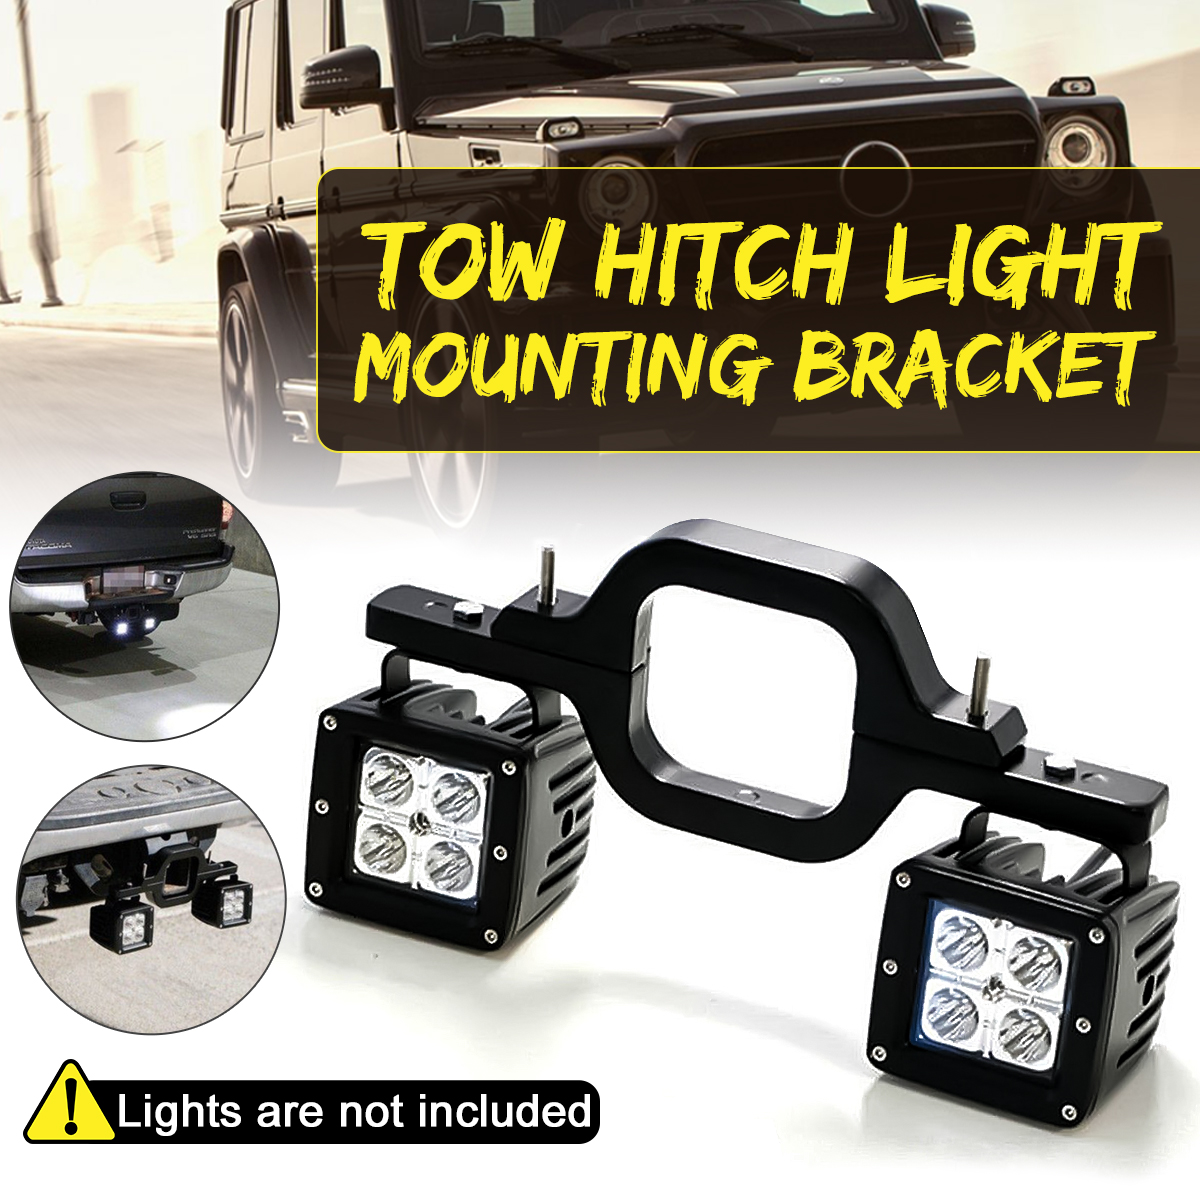 Universal Car Tow Hitch Light Mounting Bracket For Dual LED Backup Reverse Off-Road Truck SUV Tow Hitch Light Mounting Aluminum